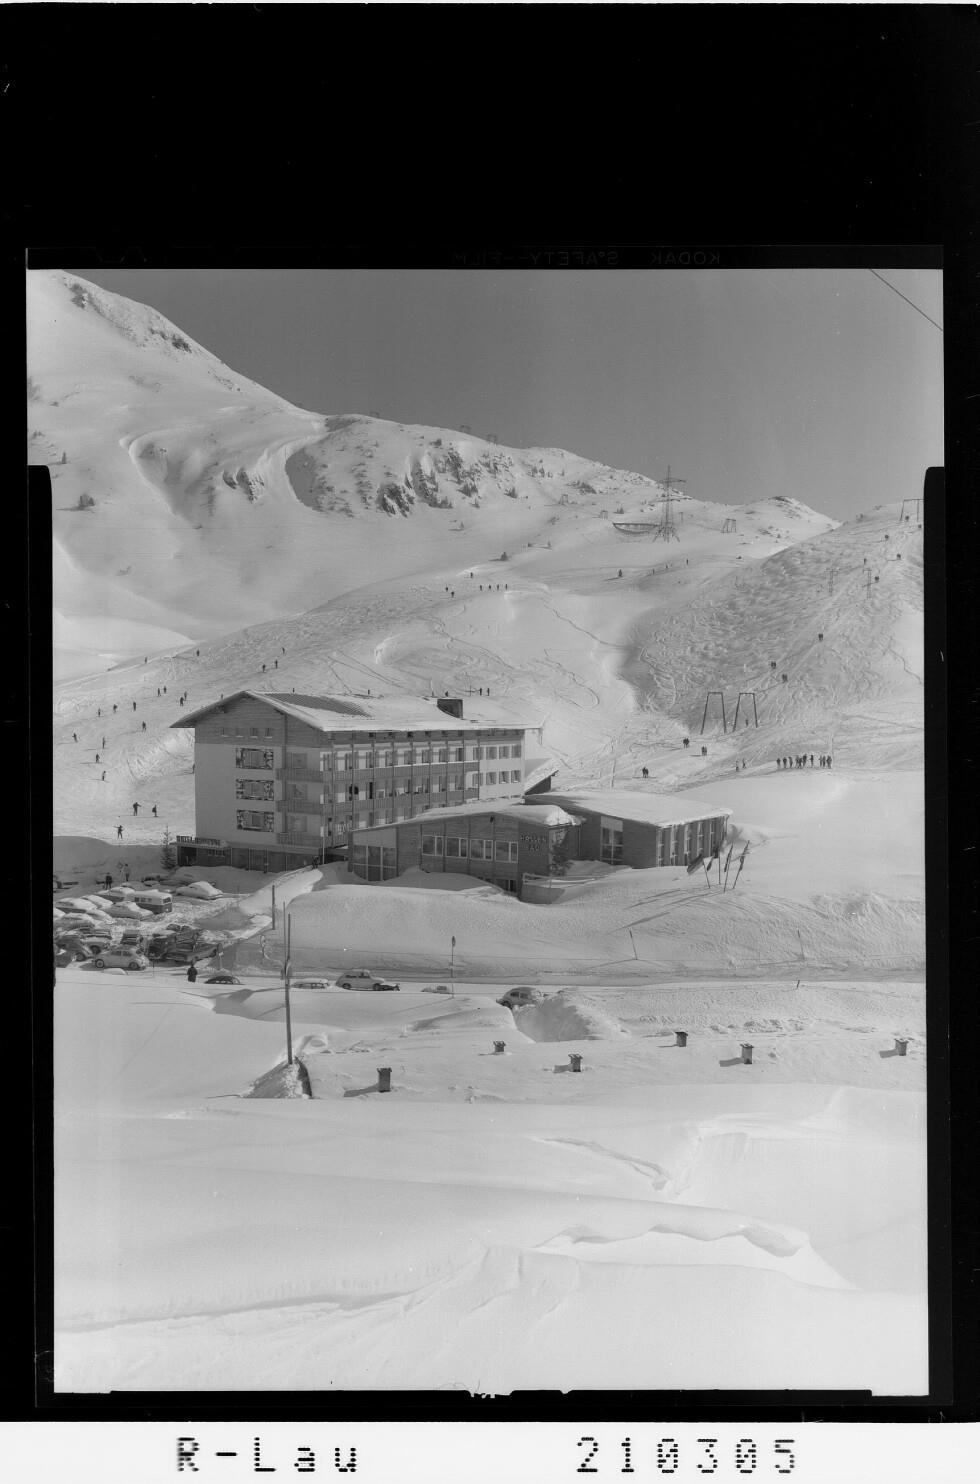 [St.Christoph am Arlberg / Hotel Bellevue]